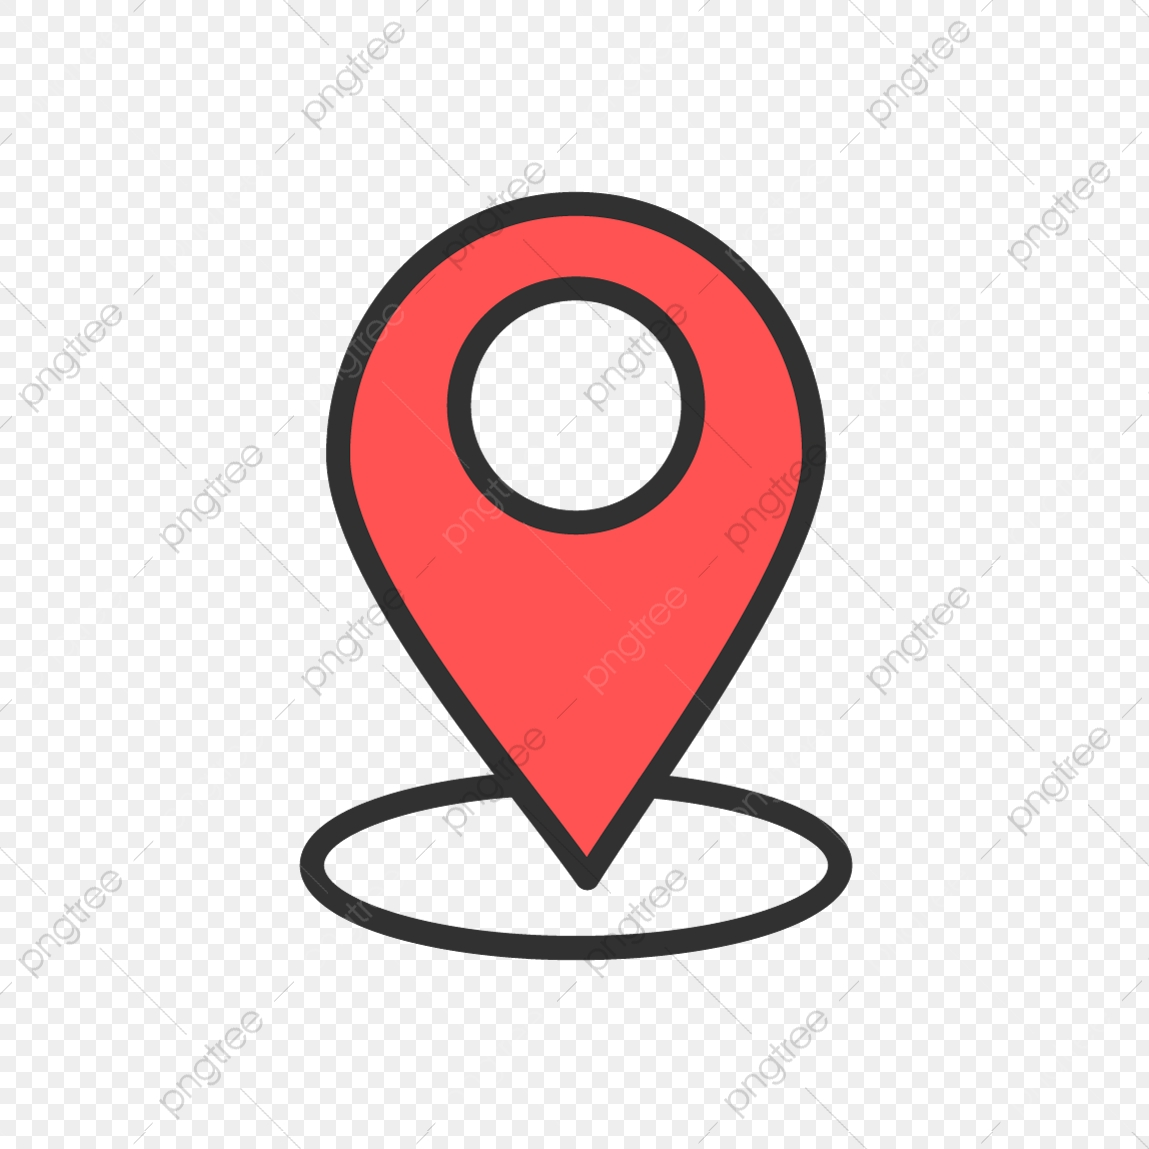 location icon png images vector and psd files free download on pngtree https pngtree com freepng vector location icon 4224356 html